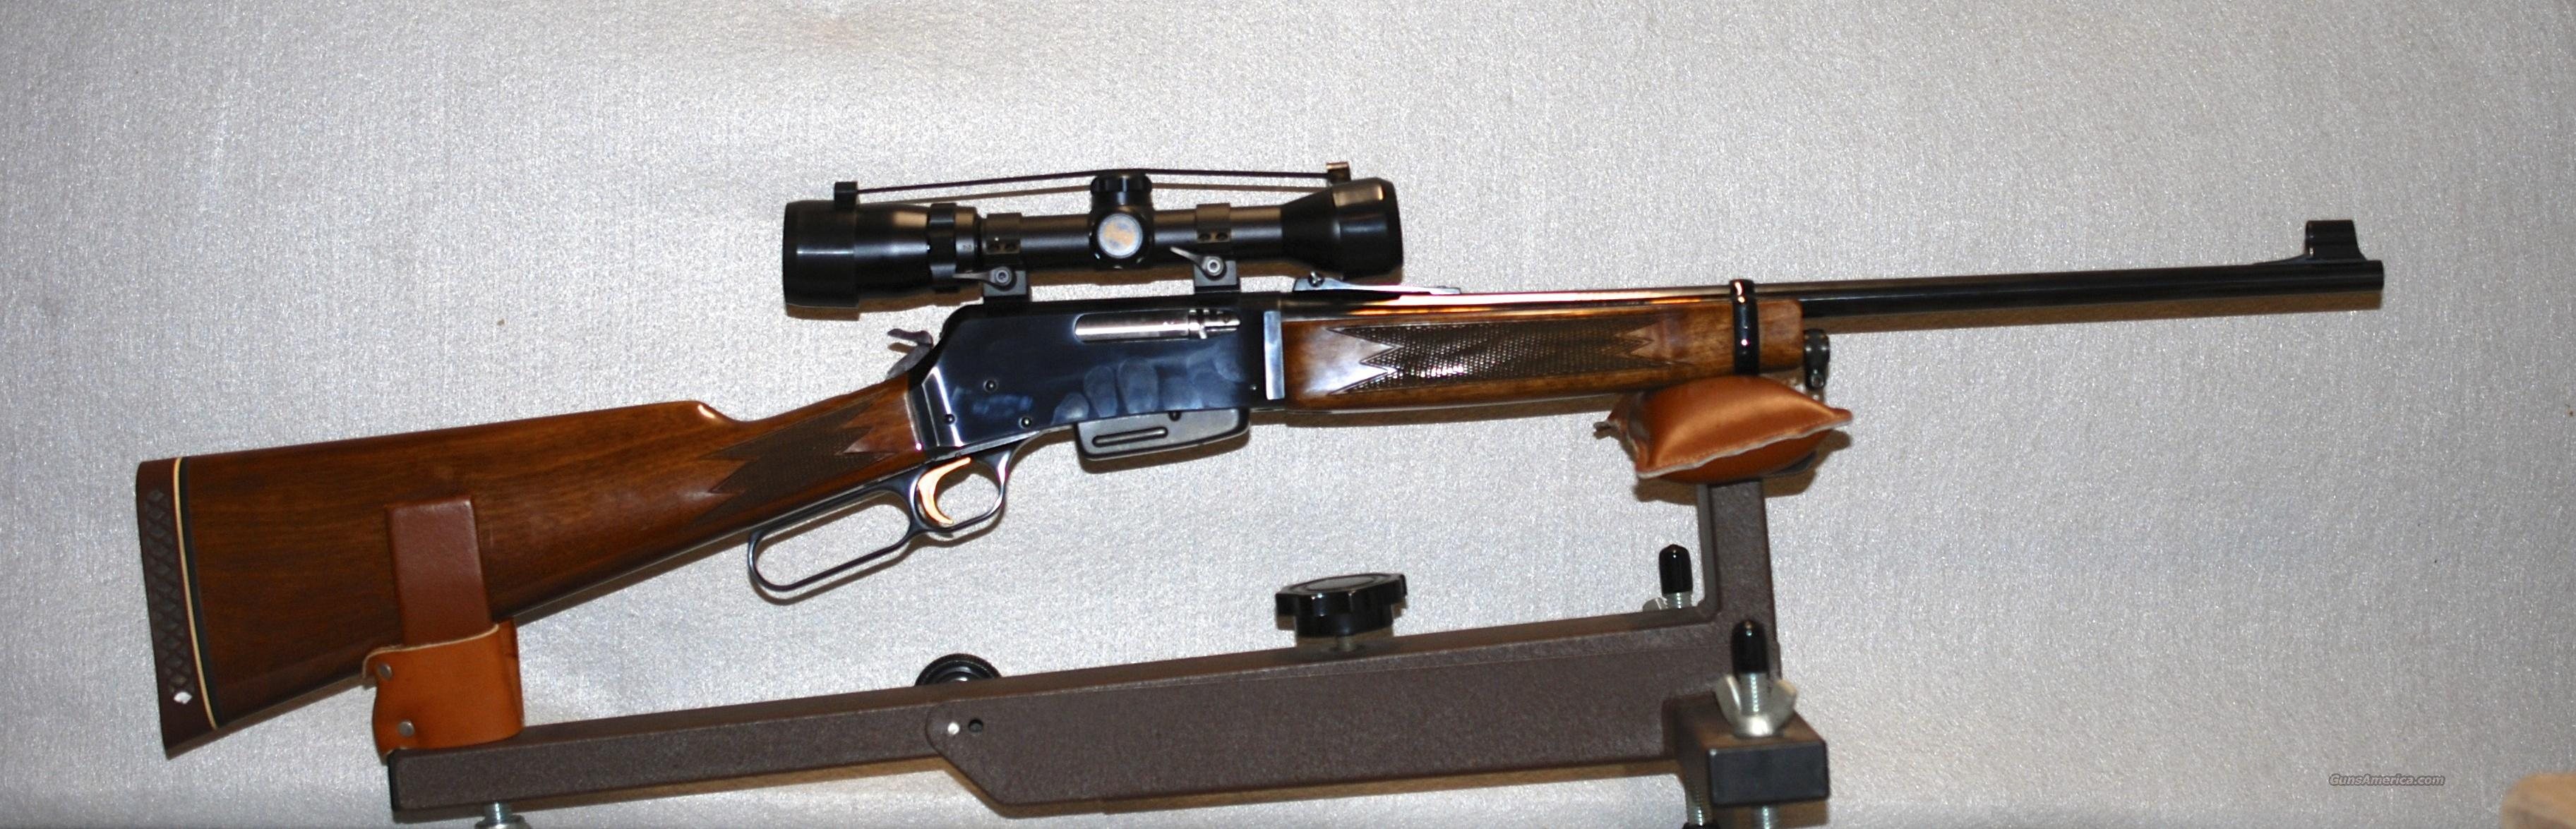 Browing BLR 358  Guns > Rifles > Browning Rifles > Lever Action